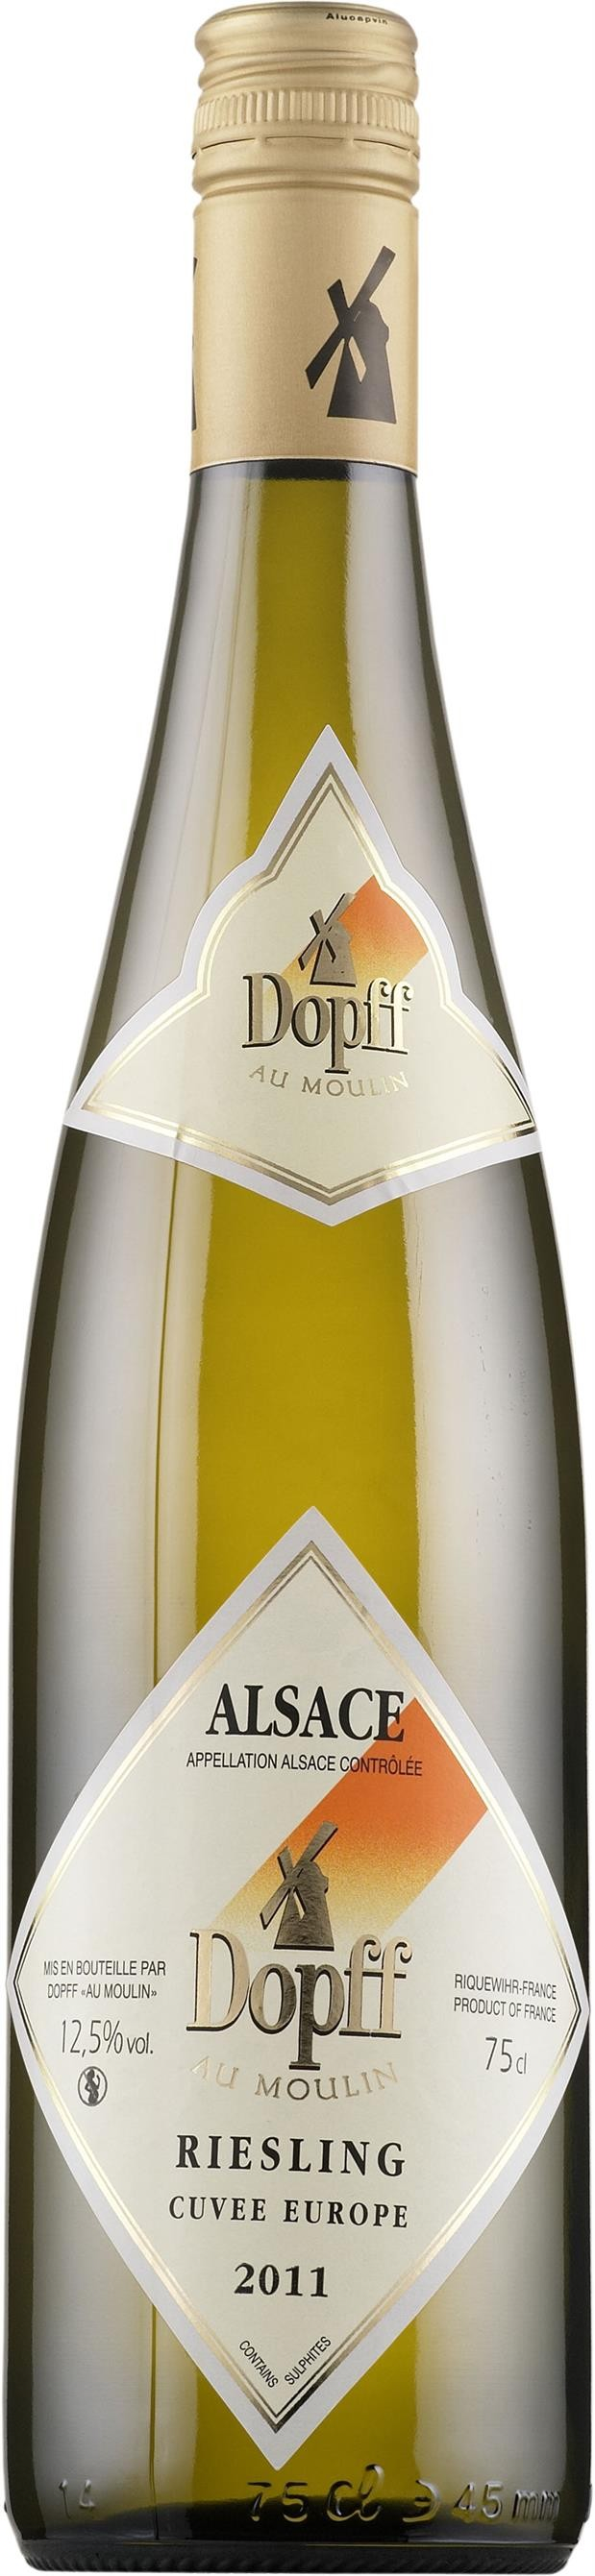 Dopff - Riesling Cuvee Europe Reserve, 2012